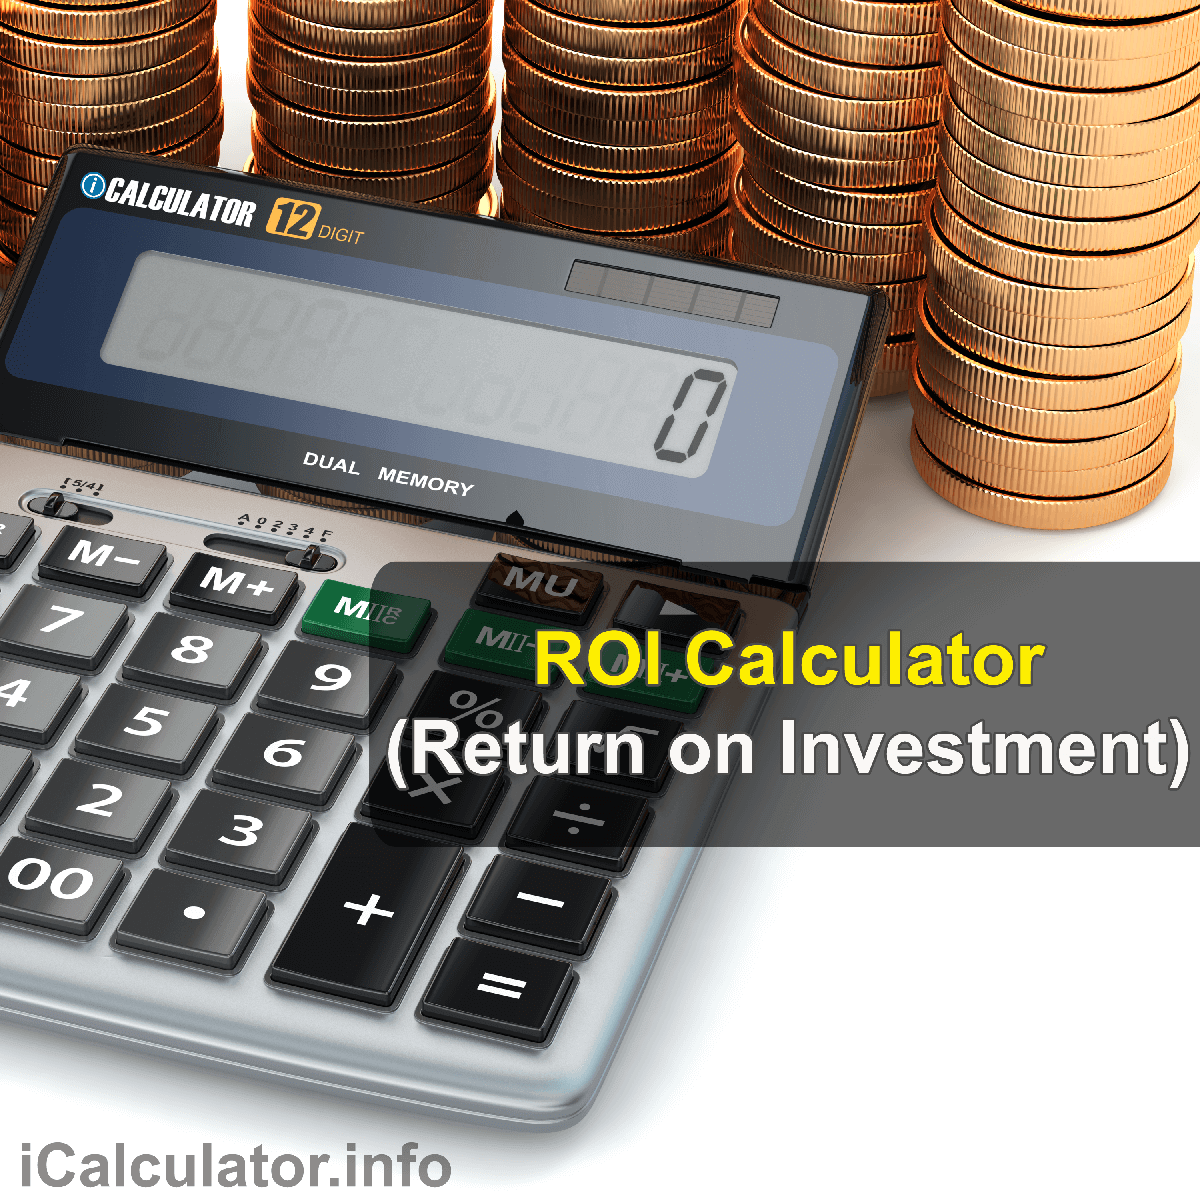 ROI Calculator. This image shows the an accountant manually calculating the return on investment formula. The return on investment formula is used by the ROI Calculator to calculate the ROI percentage and ROI Ratio to support investment decision making.